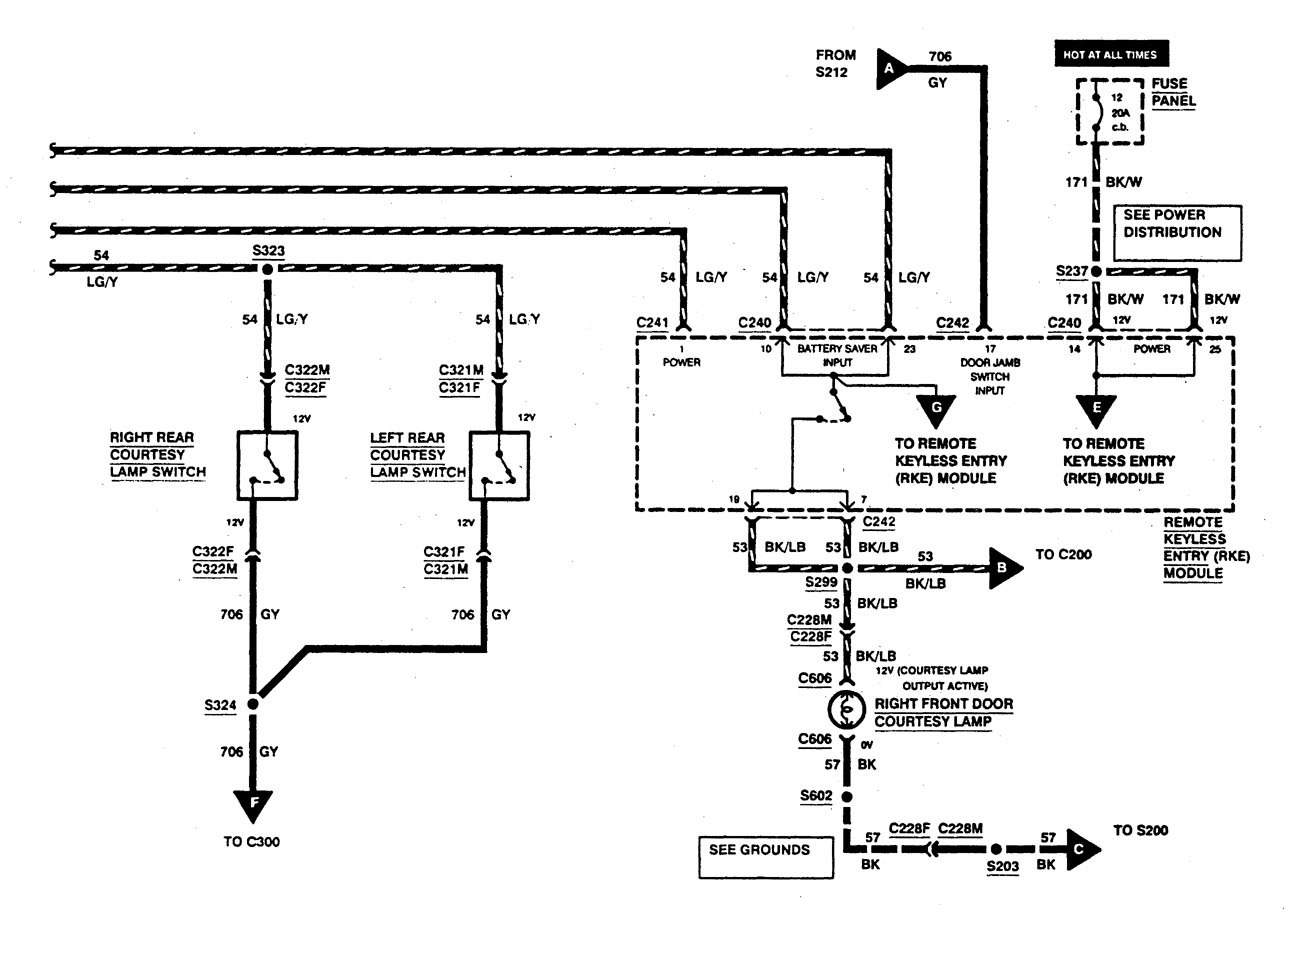 hight resolution of ford f53 1997 wiring diagrams keyless entry carknowledge mix ford f53 wiring diagrams keyless